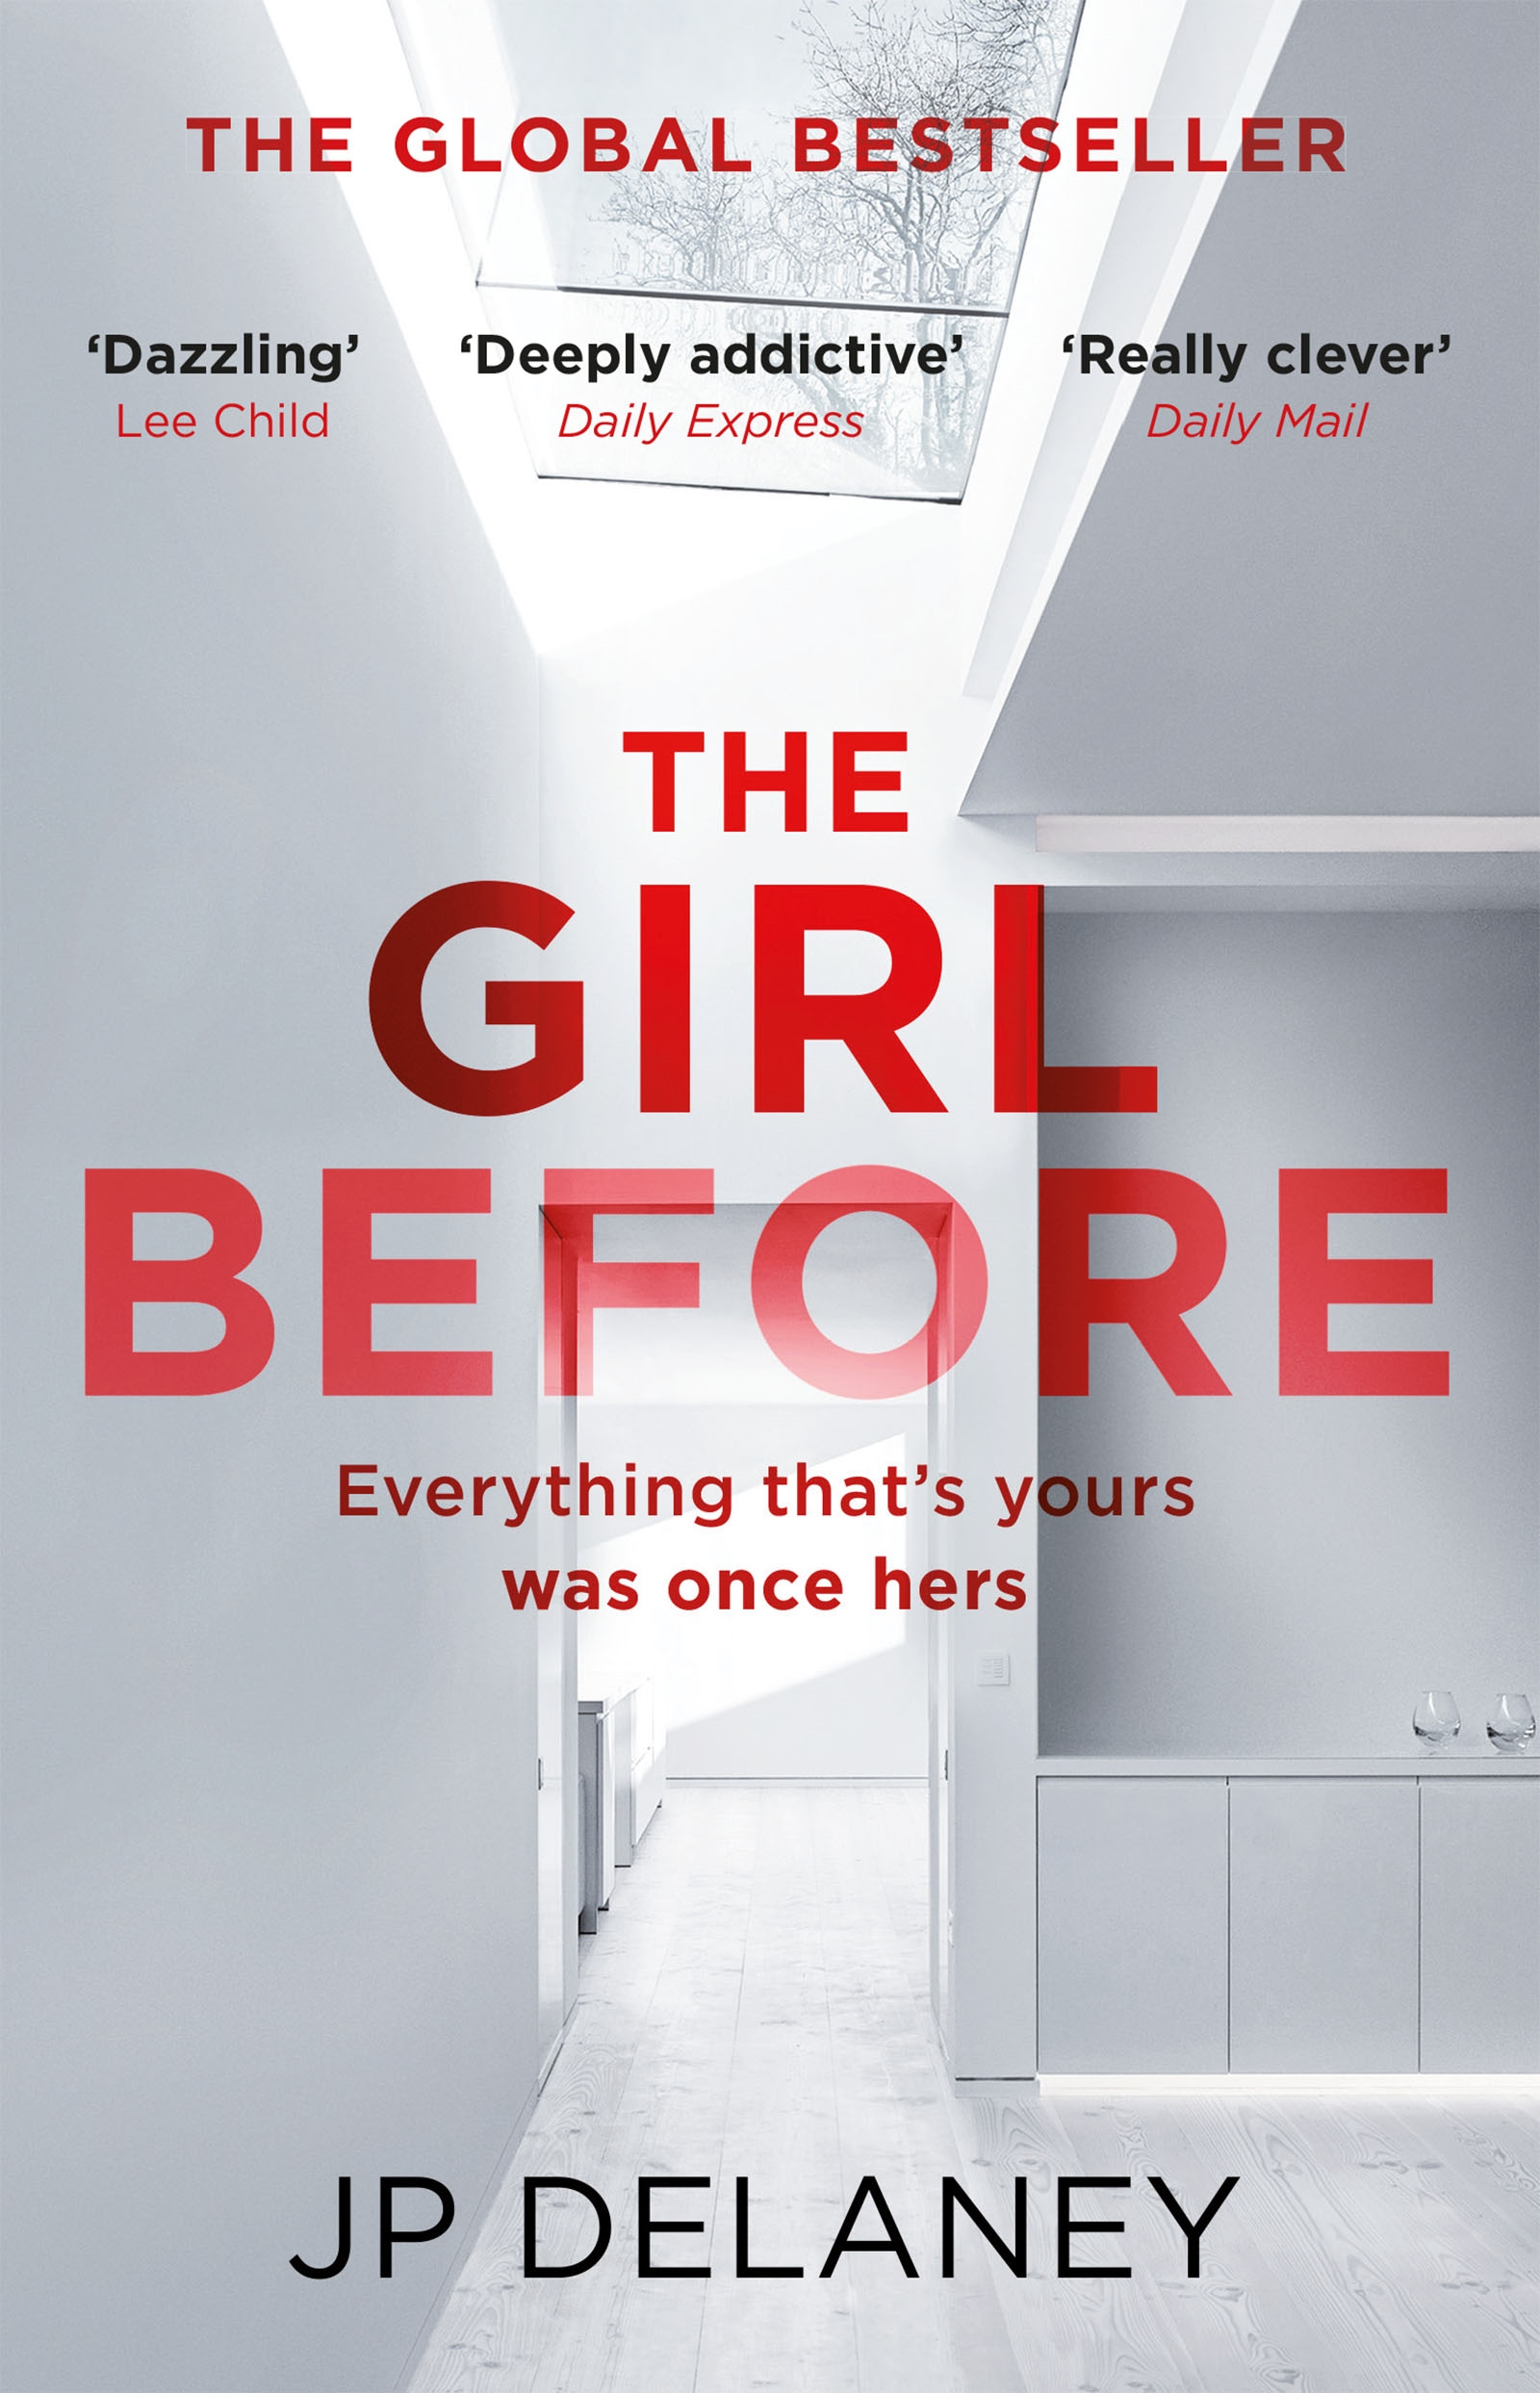 The girl before jacket